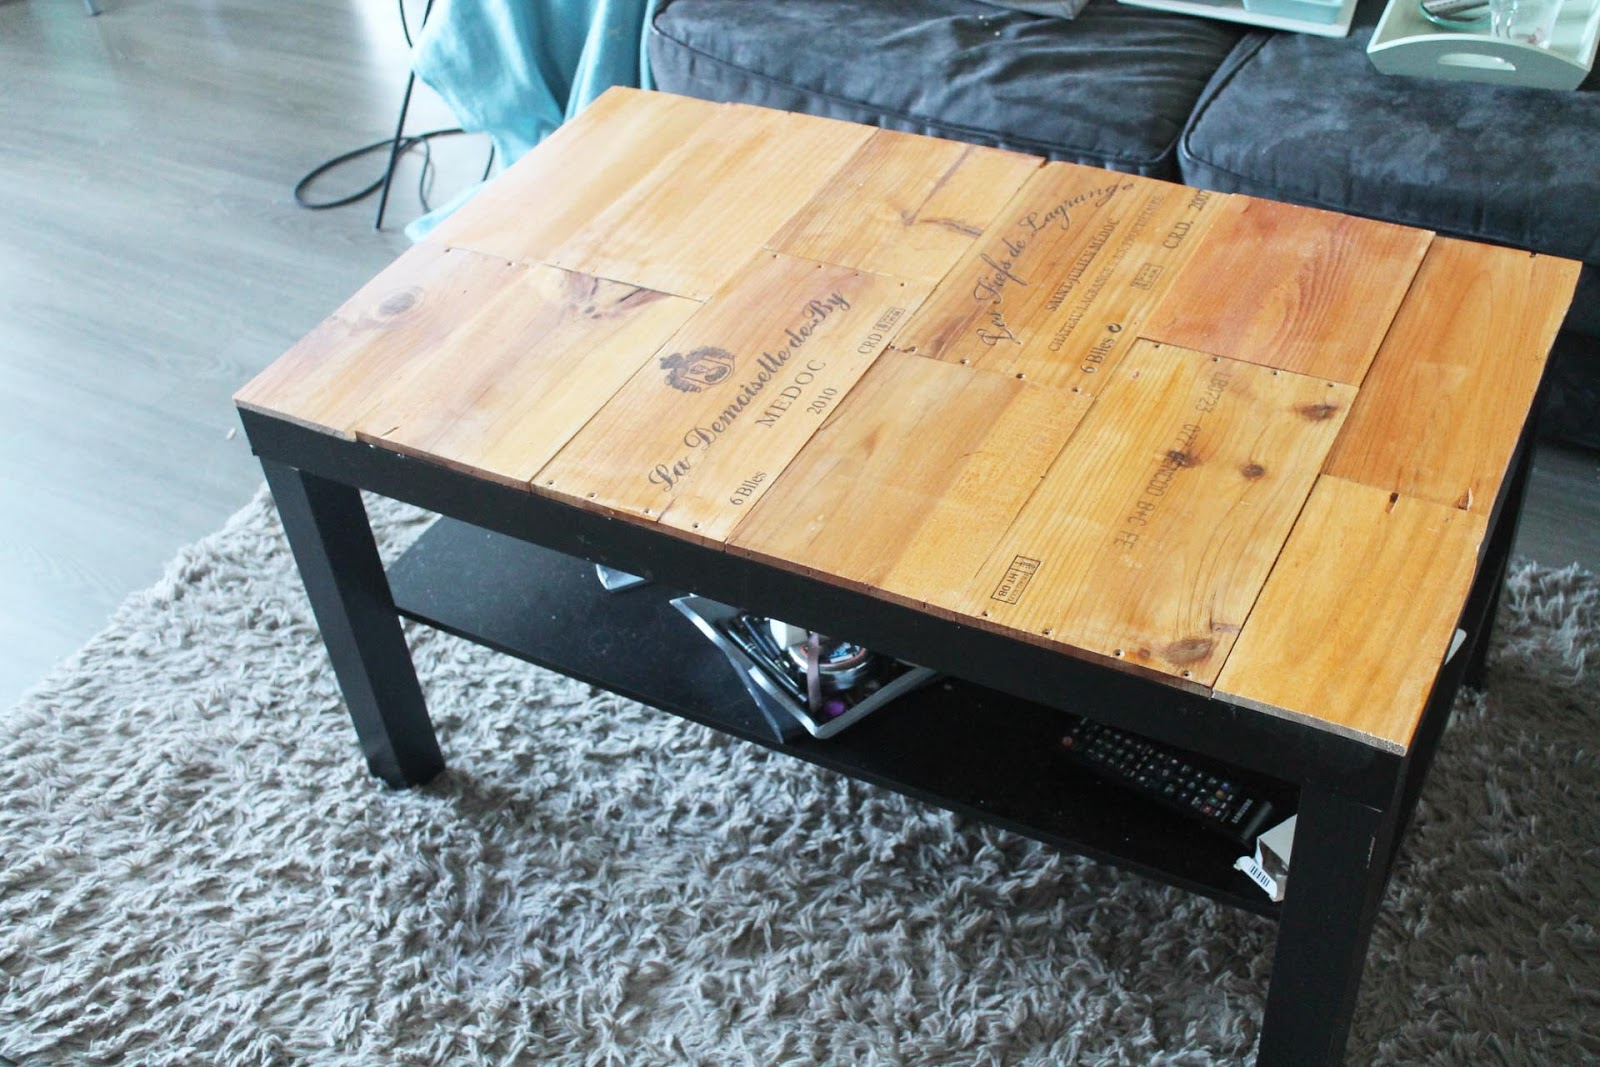 Customise ta table basse avec des caisses de vin for Idee table basse recup